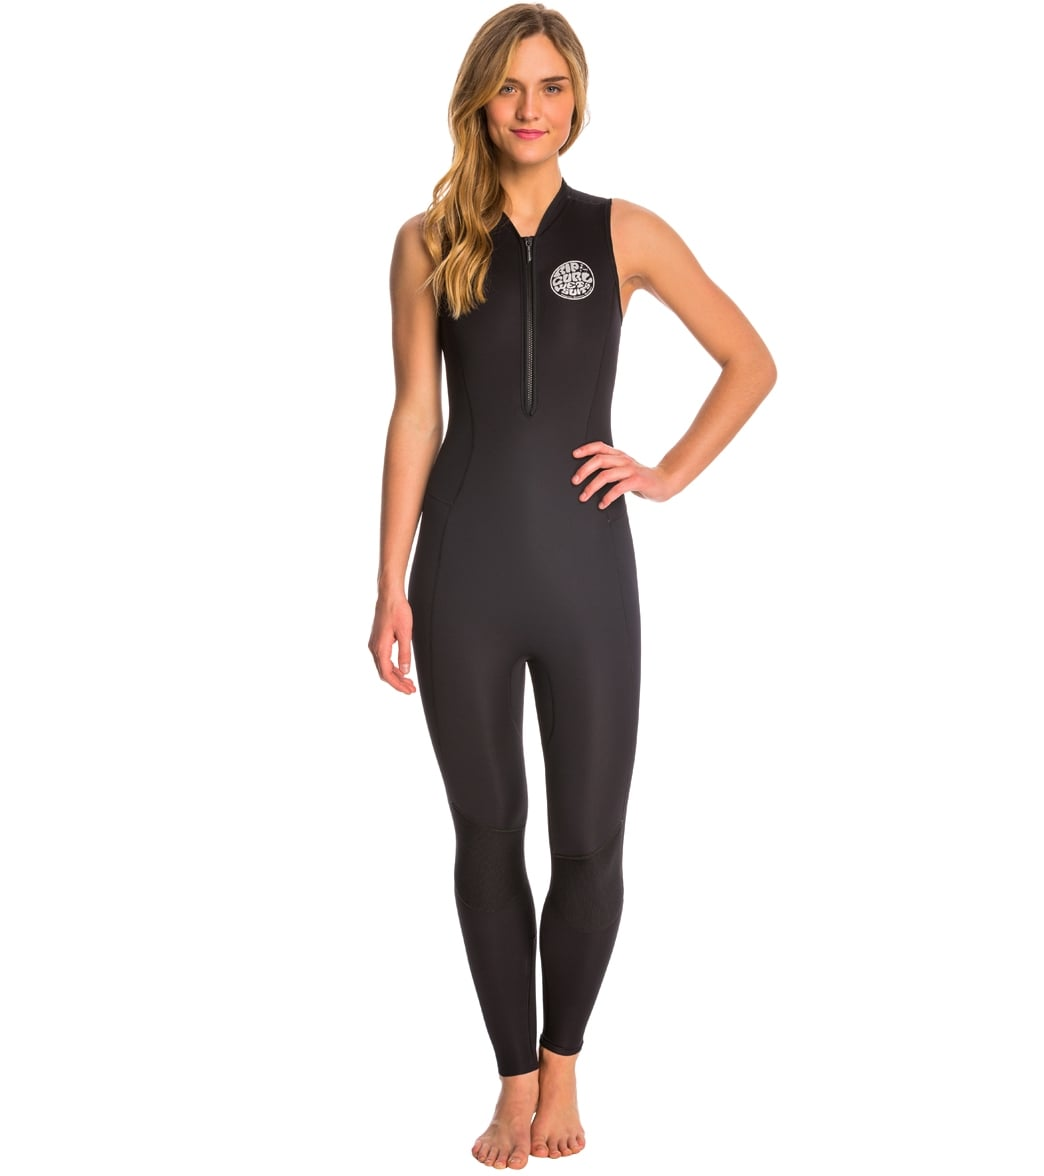 Rip Curl Women s 1.5mm G-Bomb Chest Zip Long Jane Wetsuit at SwimOutlet.com  - Free Shipping 22ab2263d